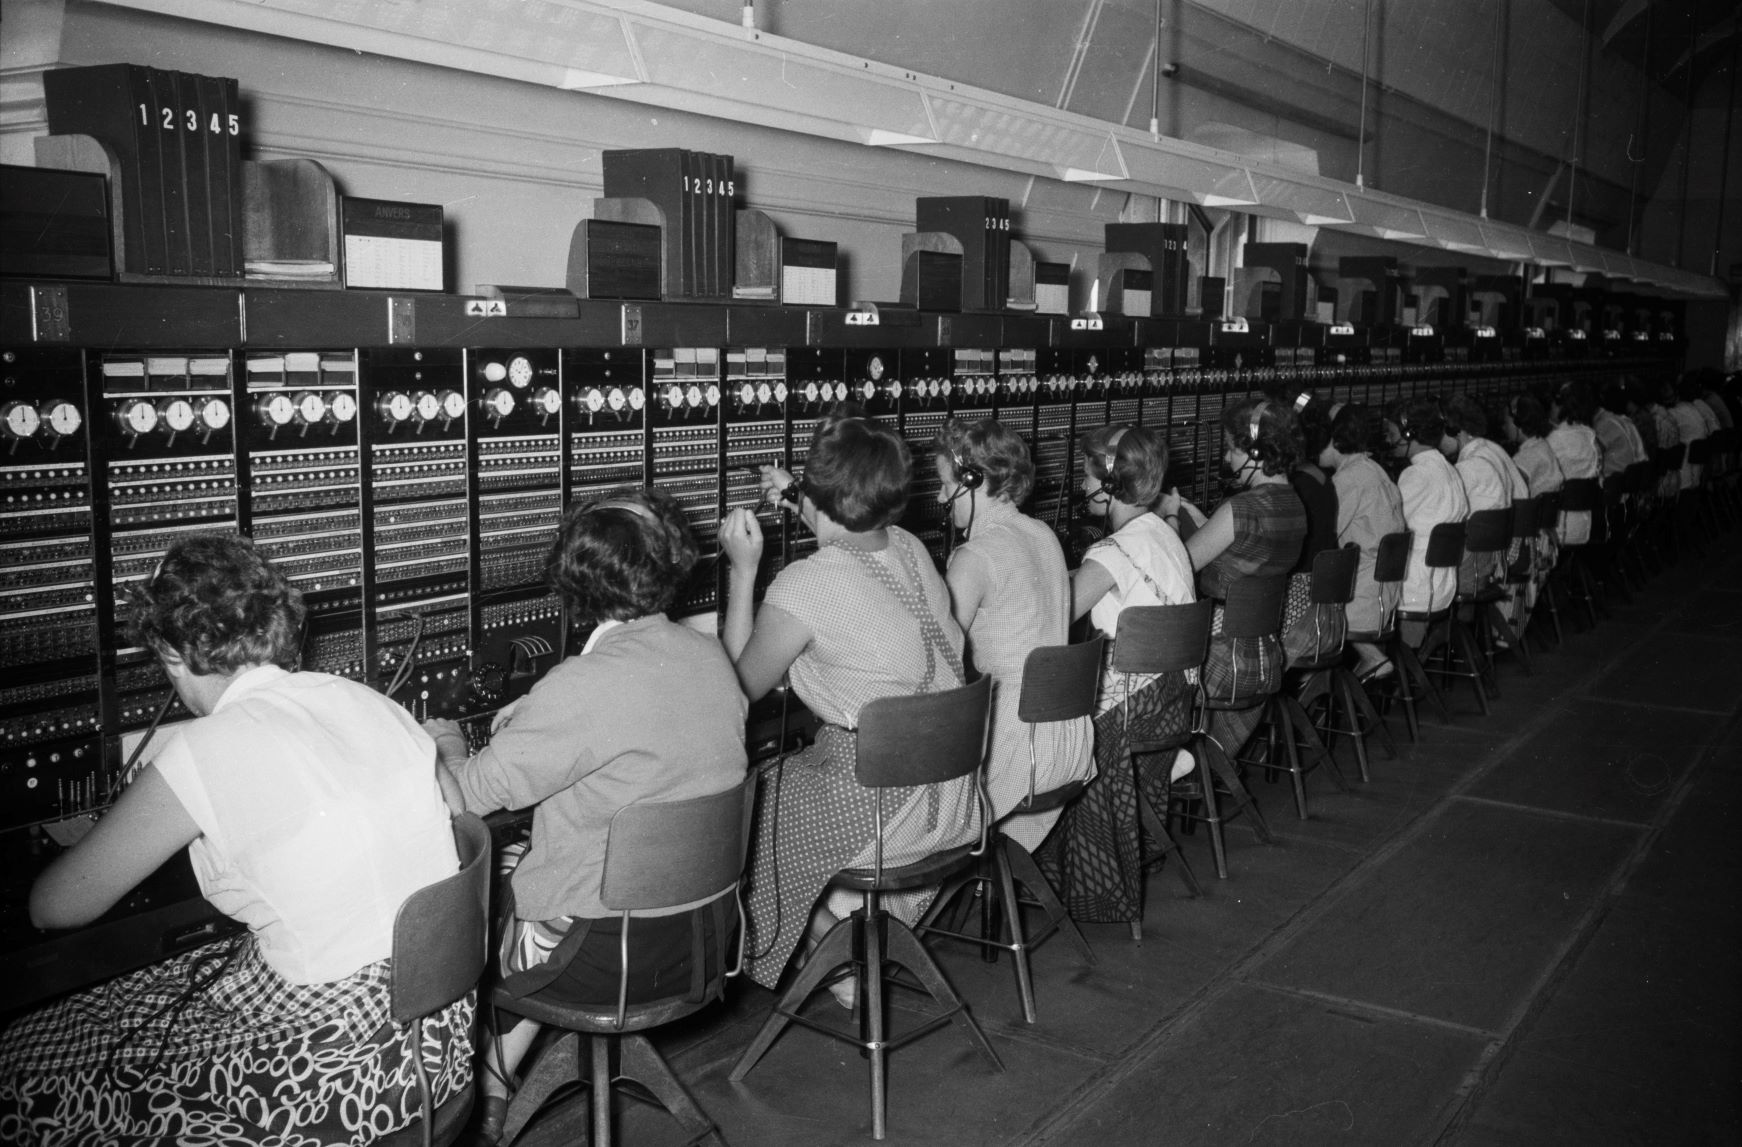 Switchboard operators at work |ETH Library Zurich, picture archive